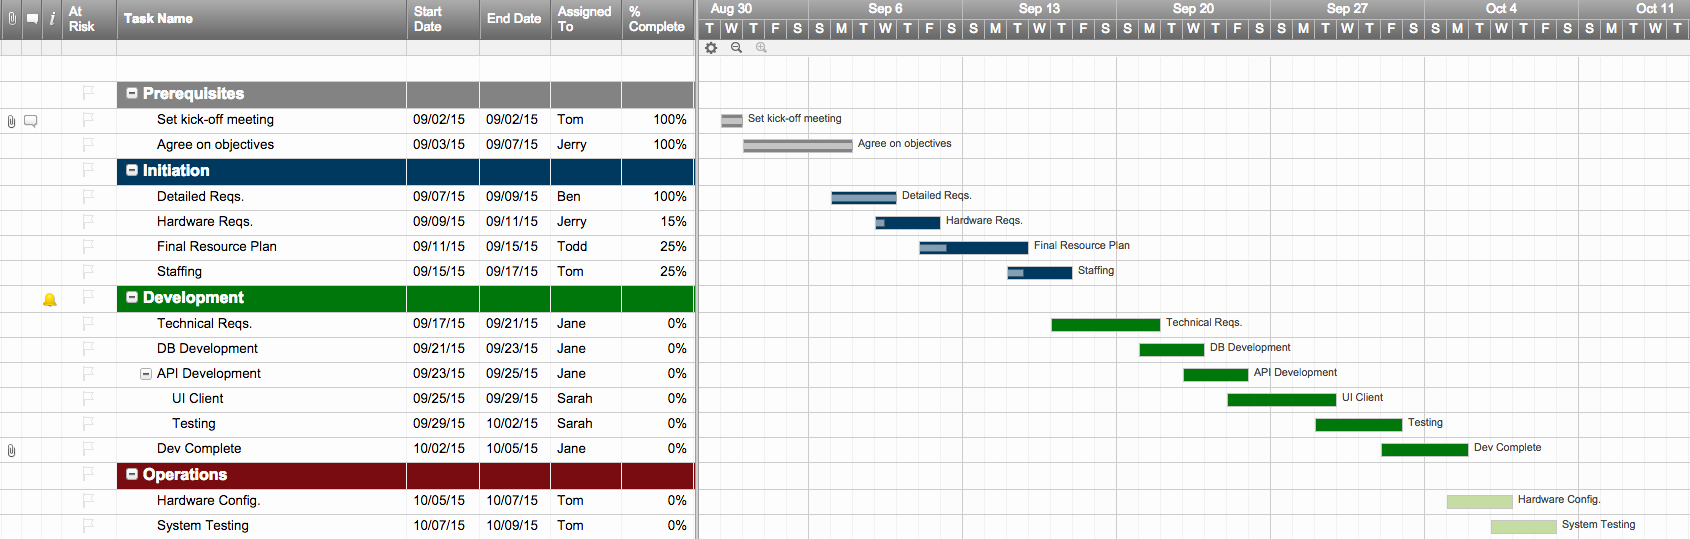 Remodel Project Plan Template Awesome top Project Plan Templates for Excel